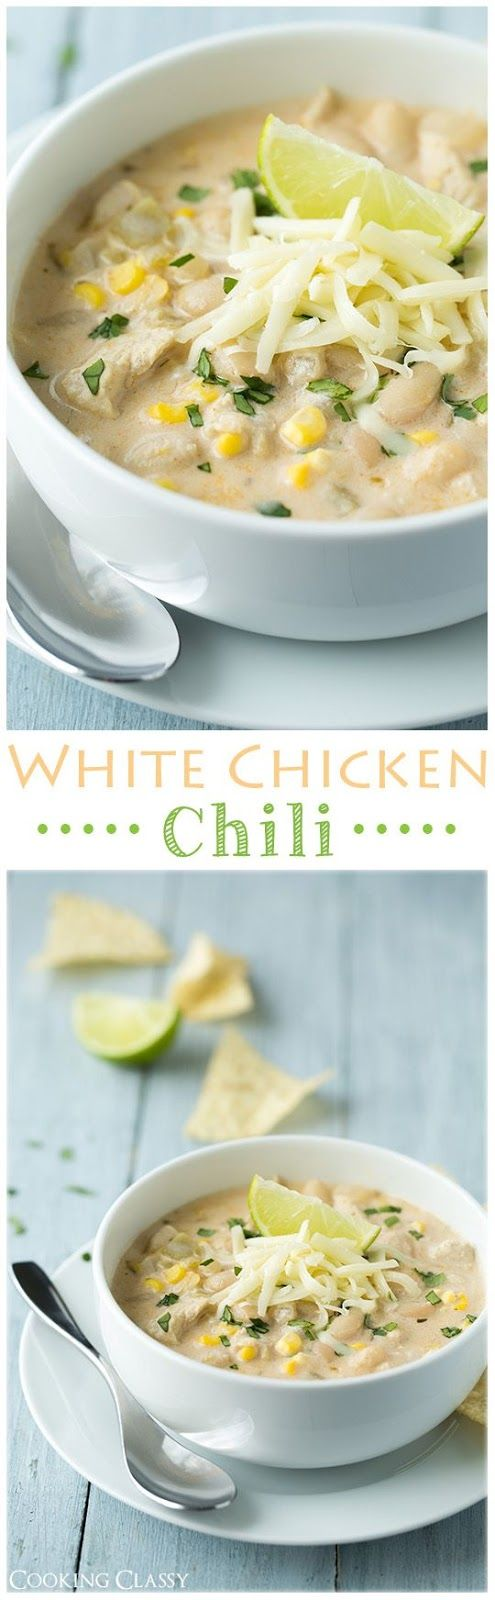 The best homemade soups recipes easy quick and yummy comfort food white chicken chili soup recipe cooking classy the best homemade soups recipes easy forumfinder Image collections